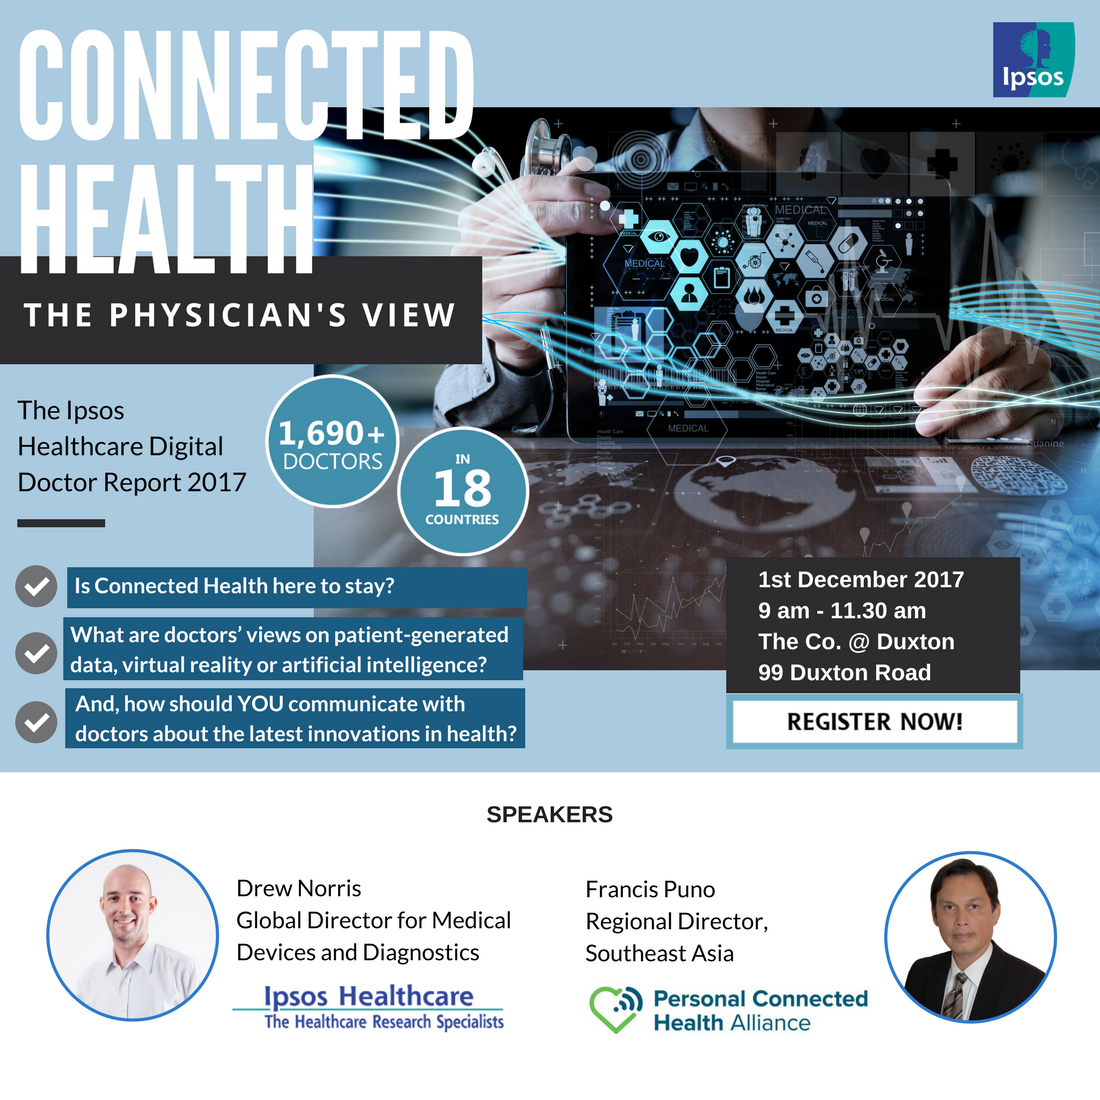 Connected health invitation